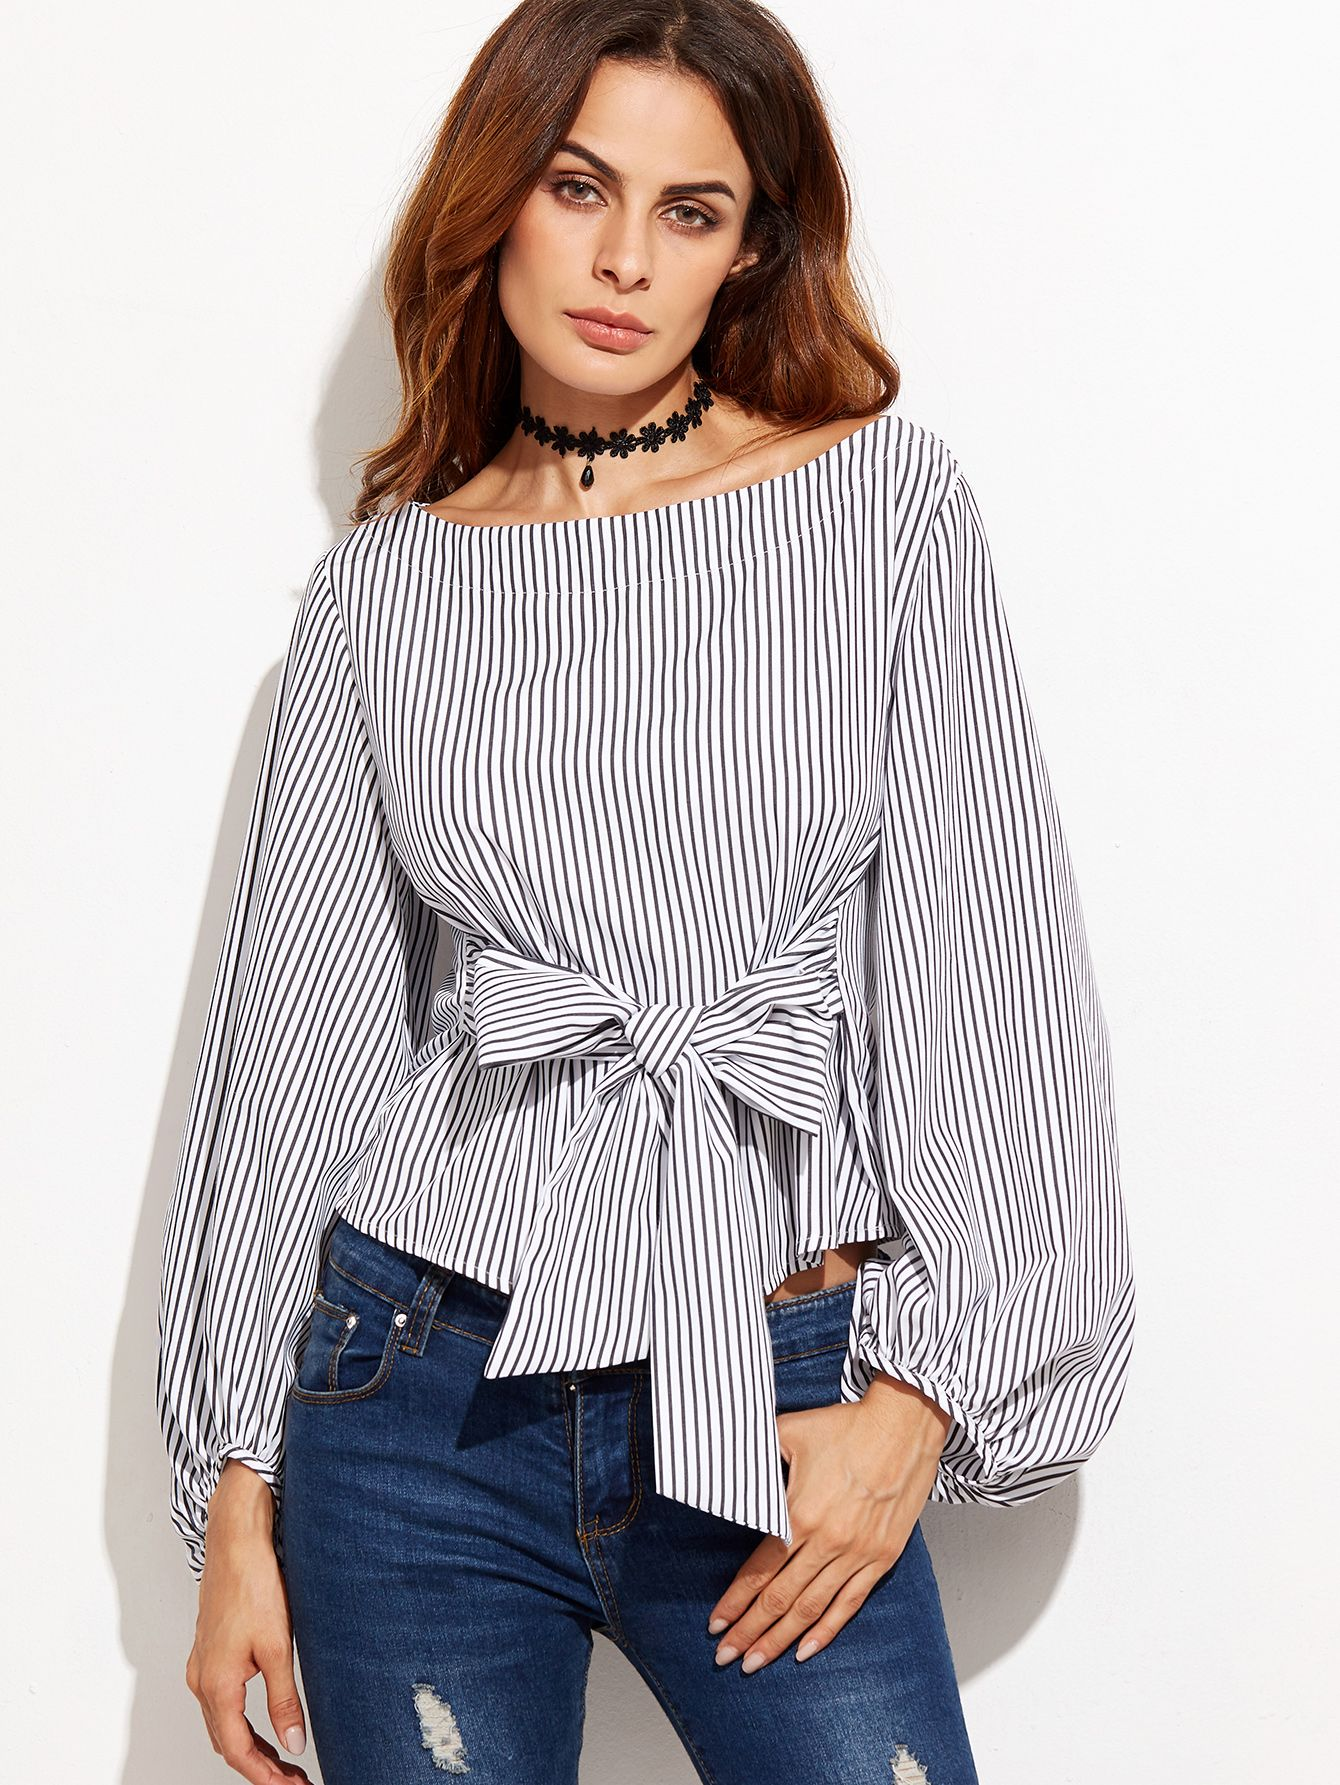 8caee69958b2 Bow Belted Front Exaggerated Lantern Sleeve Striped Top -SheIn ...